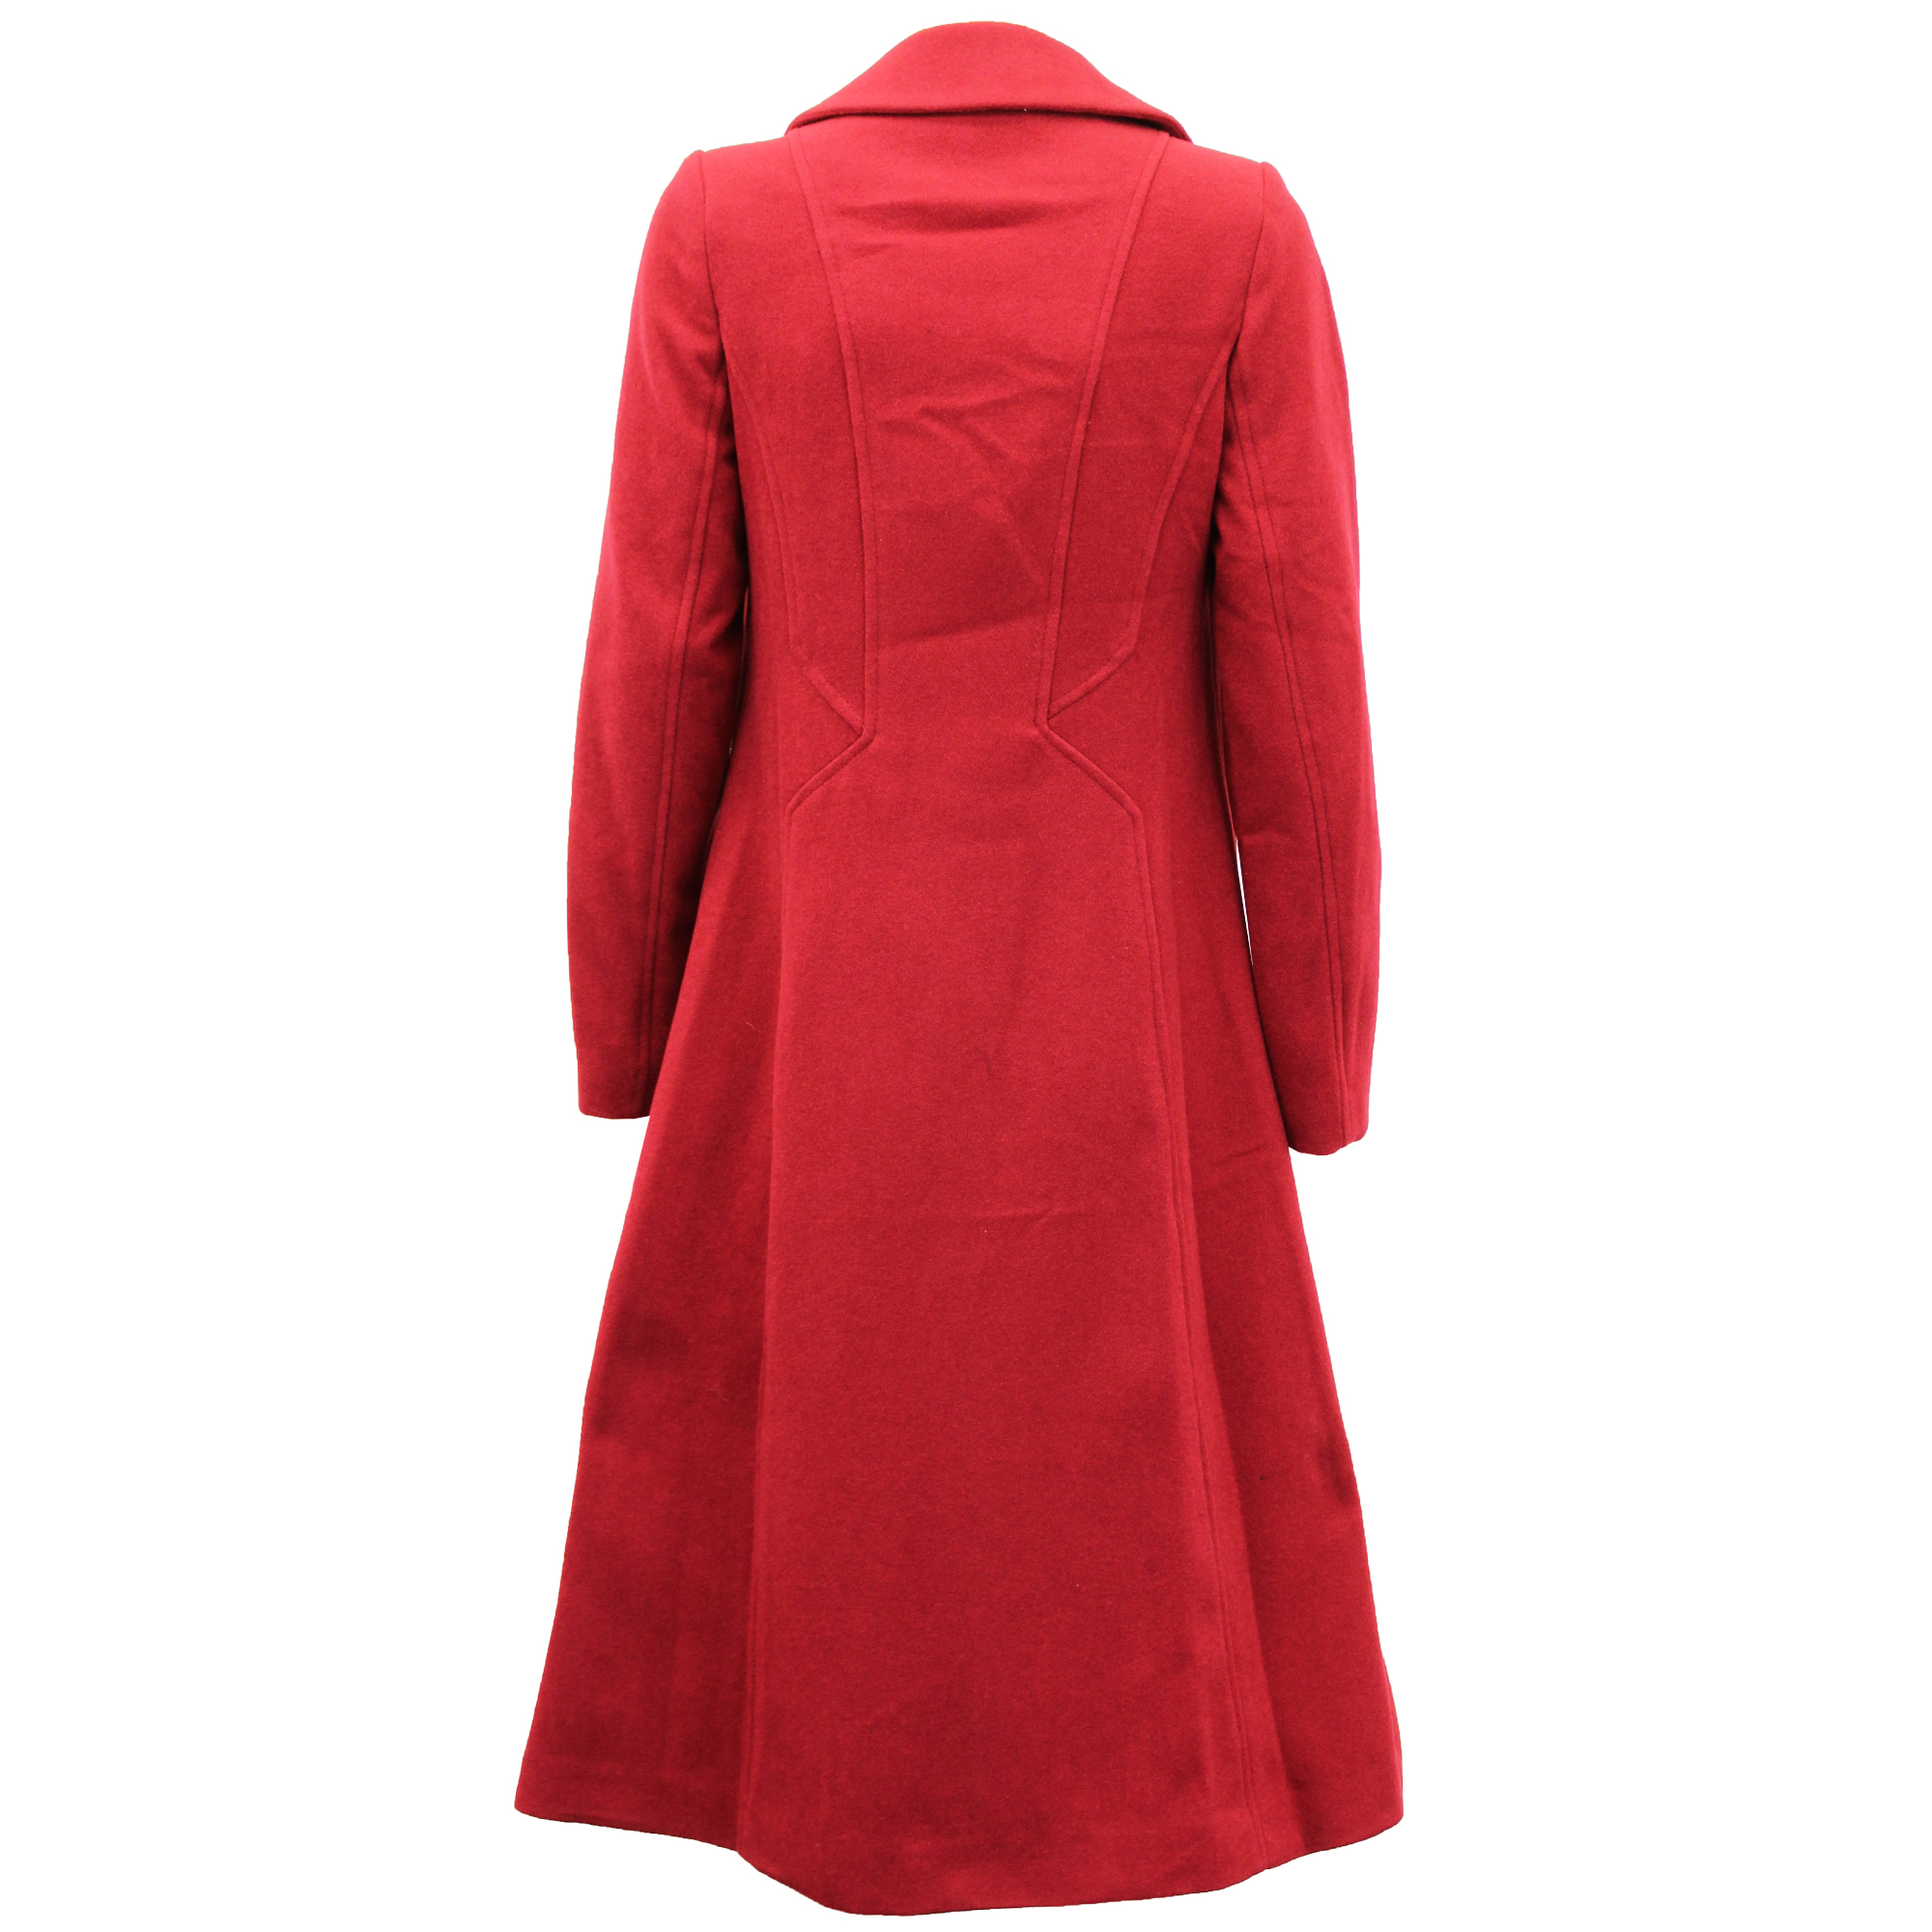 Ladies-Wool-Cashmere-Coat-Women-Jacket-Outerwear-Trench-Overcoat-Winter-Lined thumbnail 54